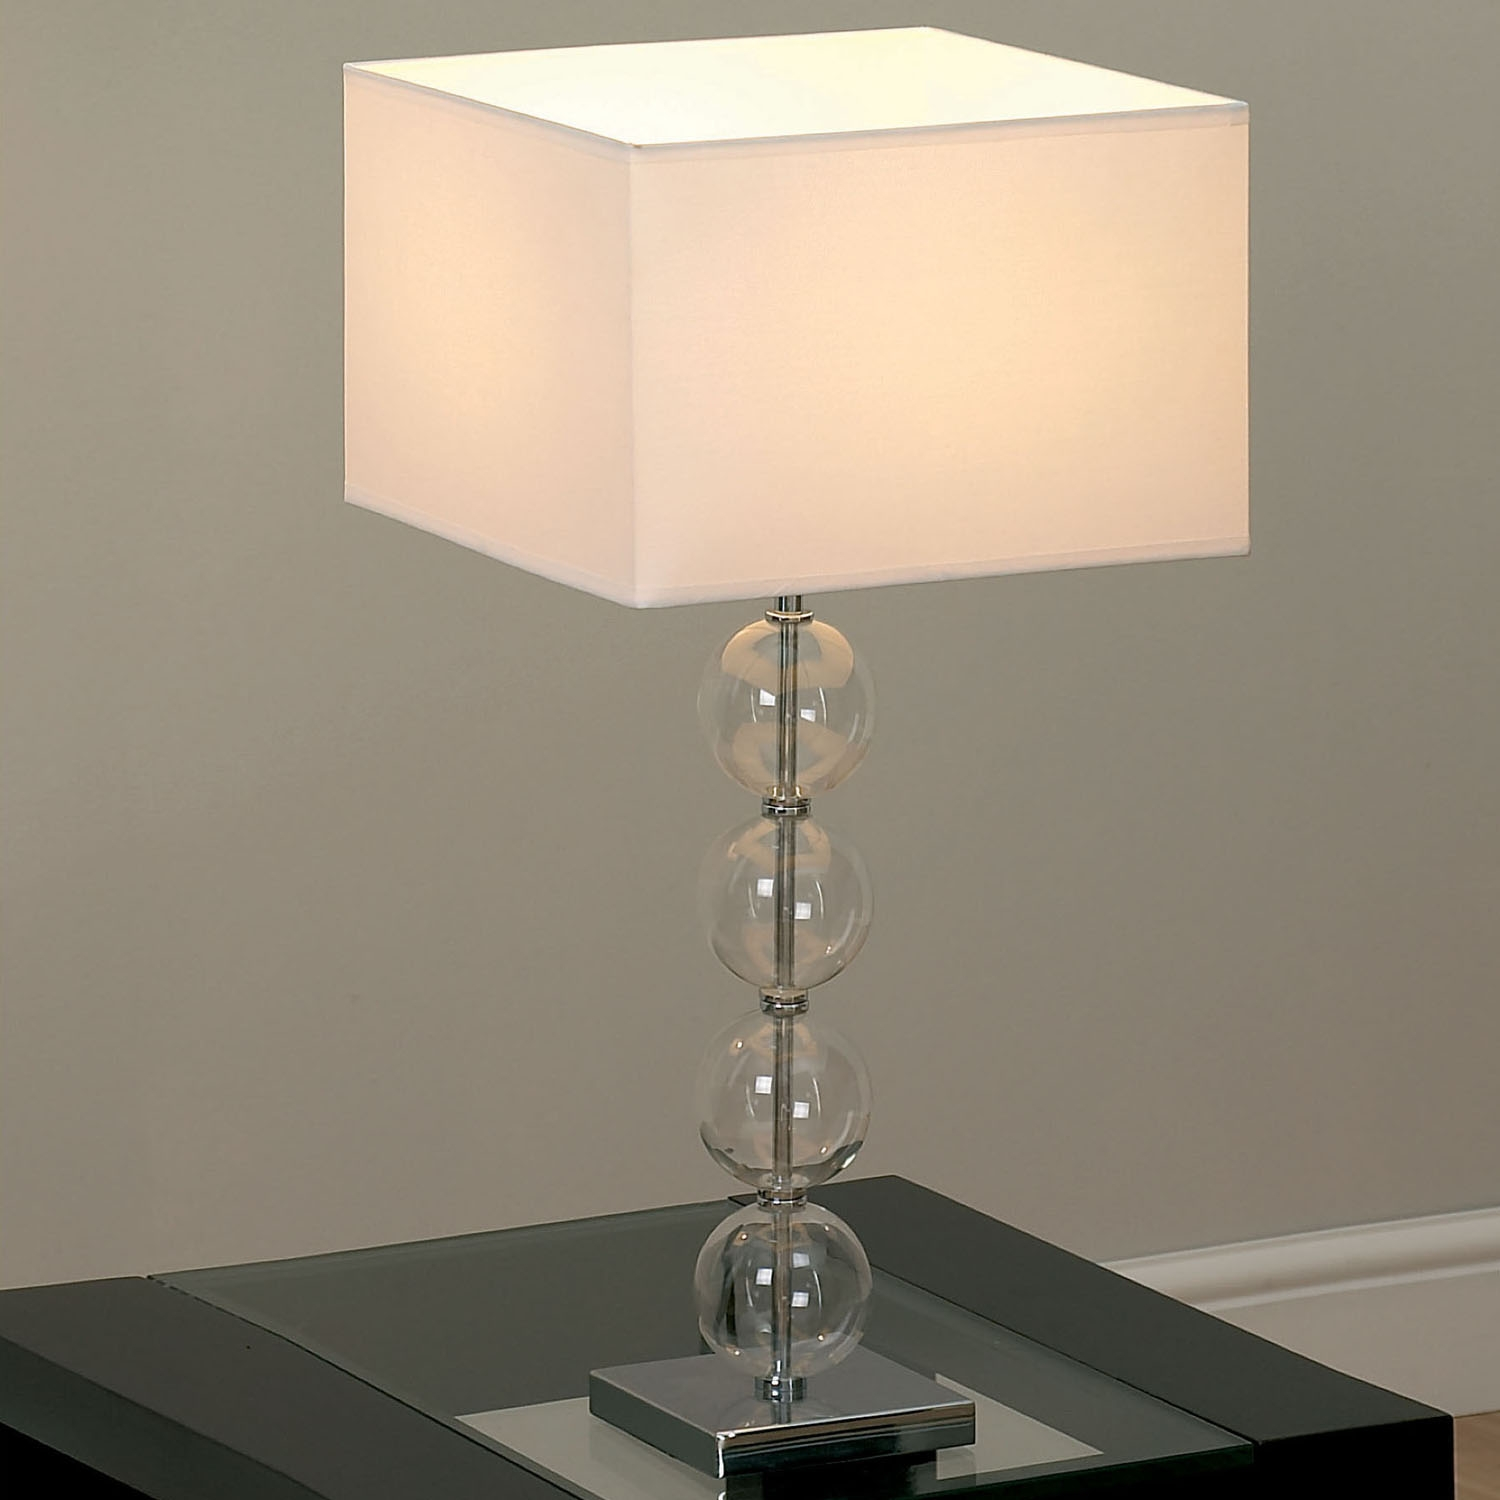 Of Endon Lighting Glass Ball Table Lamp With Square White Shade Intended For Endon Lighting Chandeliers (Image 24 of 25)